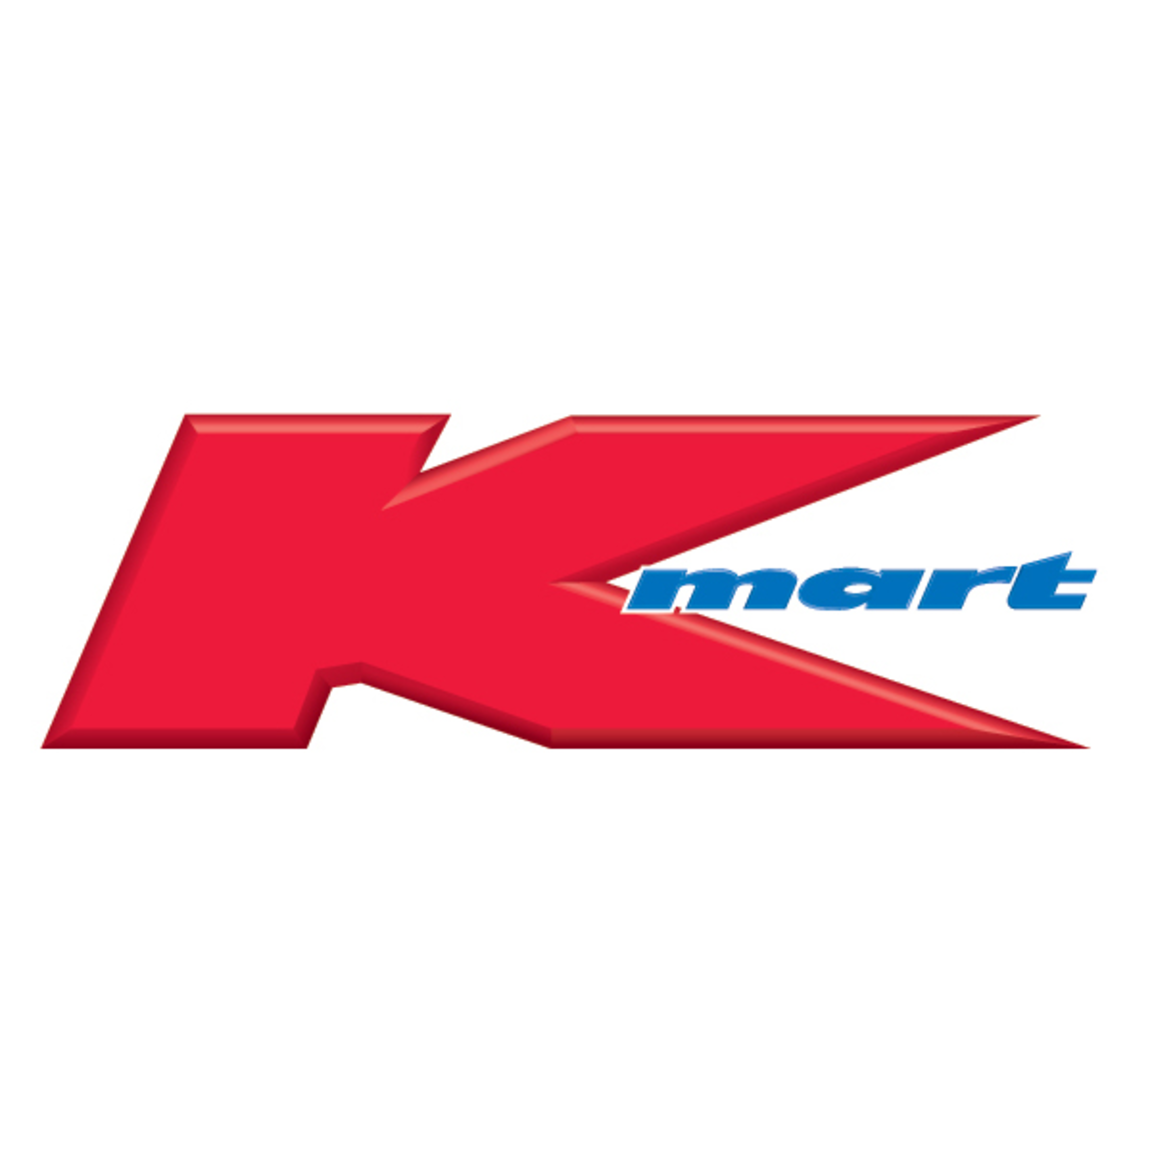 Kmart at Westfield Garden City.